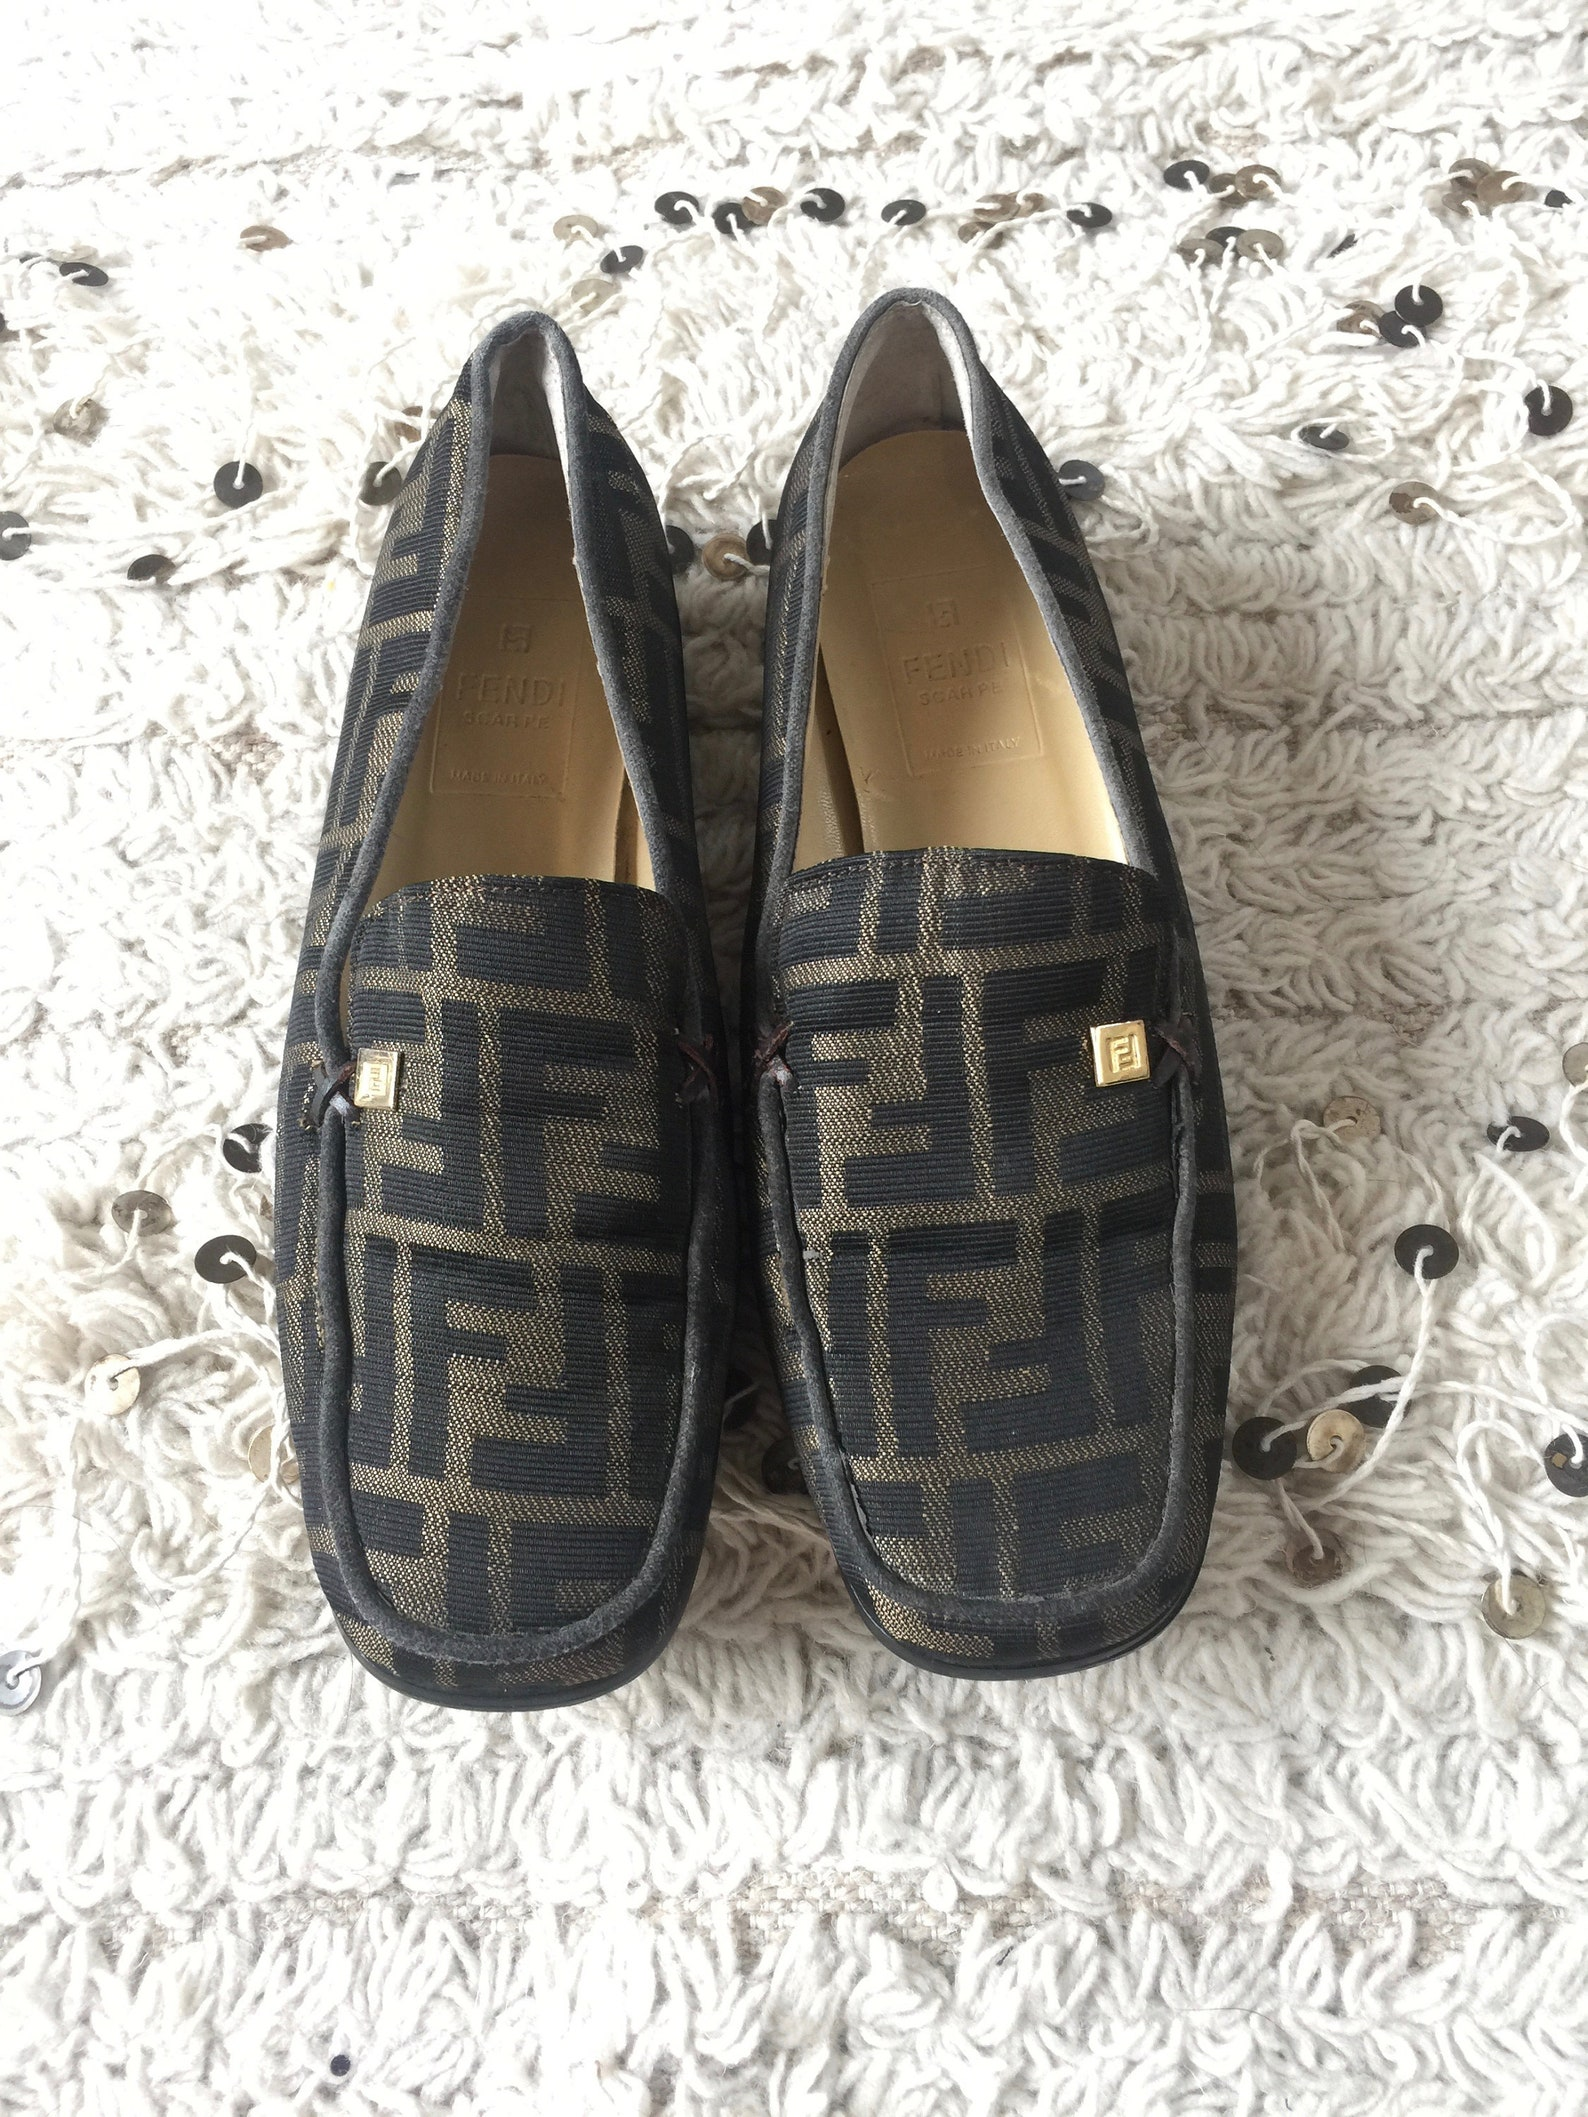 vintage fendi zucca ff monogram scarpe loafers flats driving shoes smoking slippers ballet flats 38 us 7.5 - 8